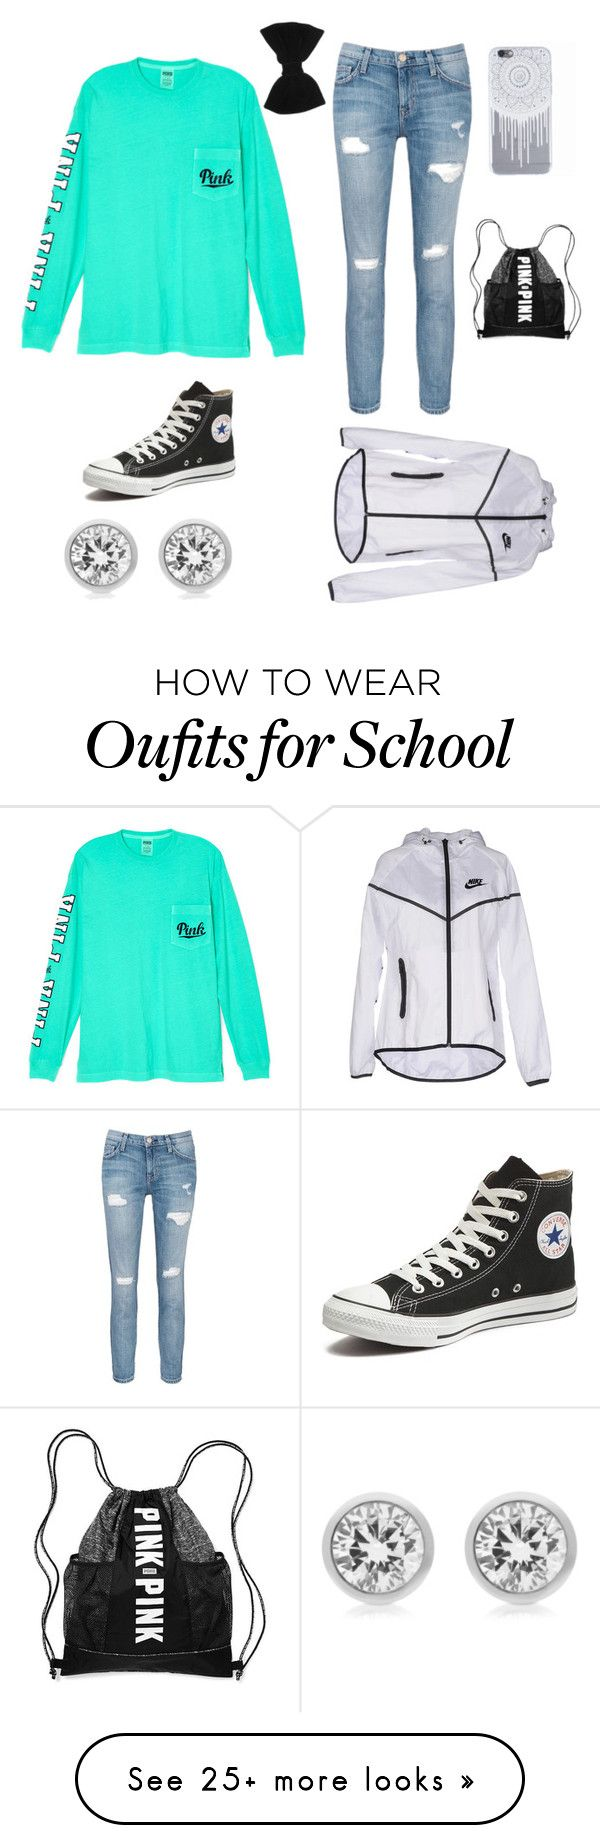 17+ best ideas about Back To School Sales on Pinterest.